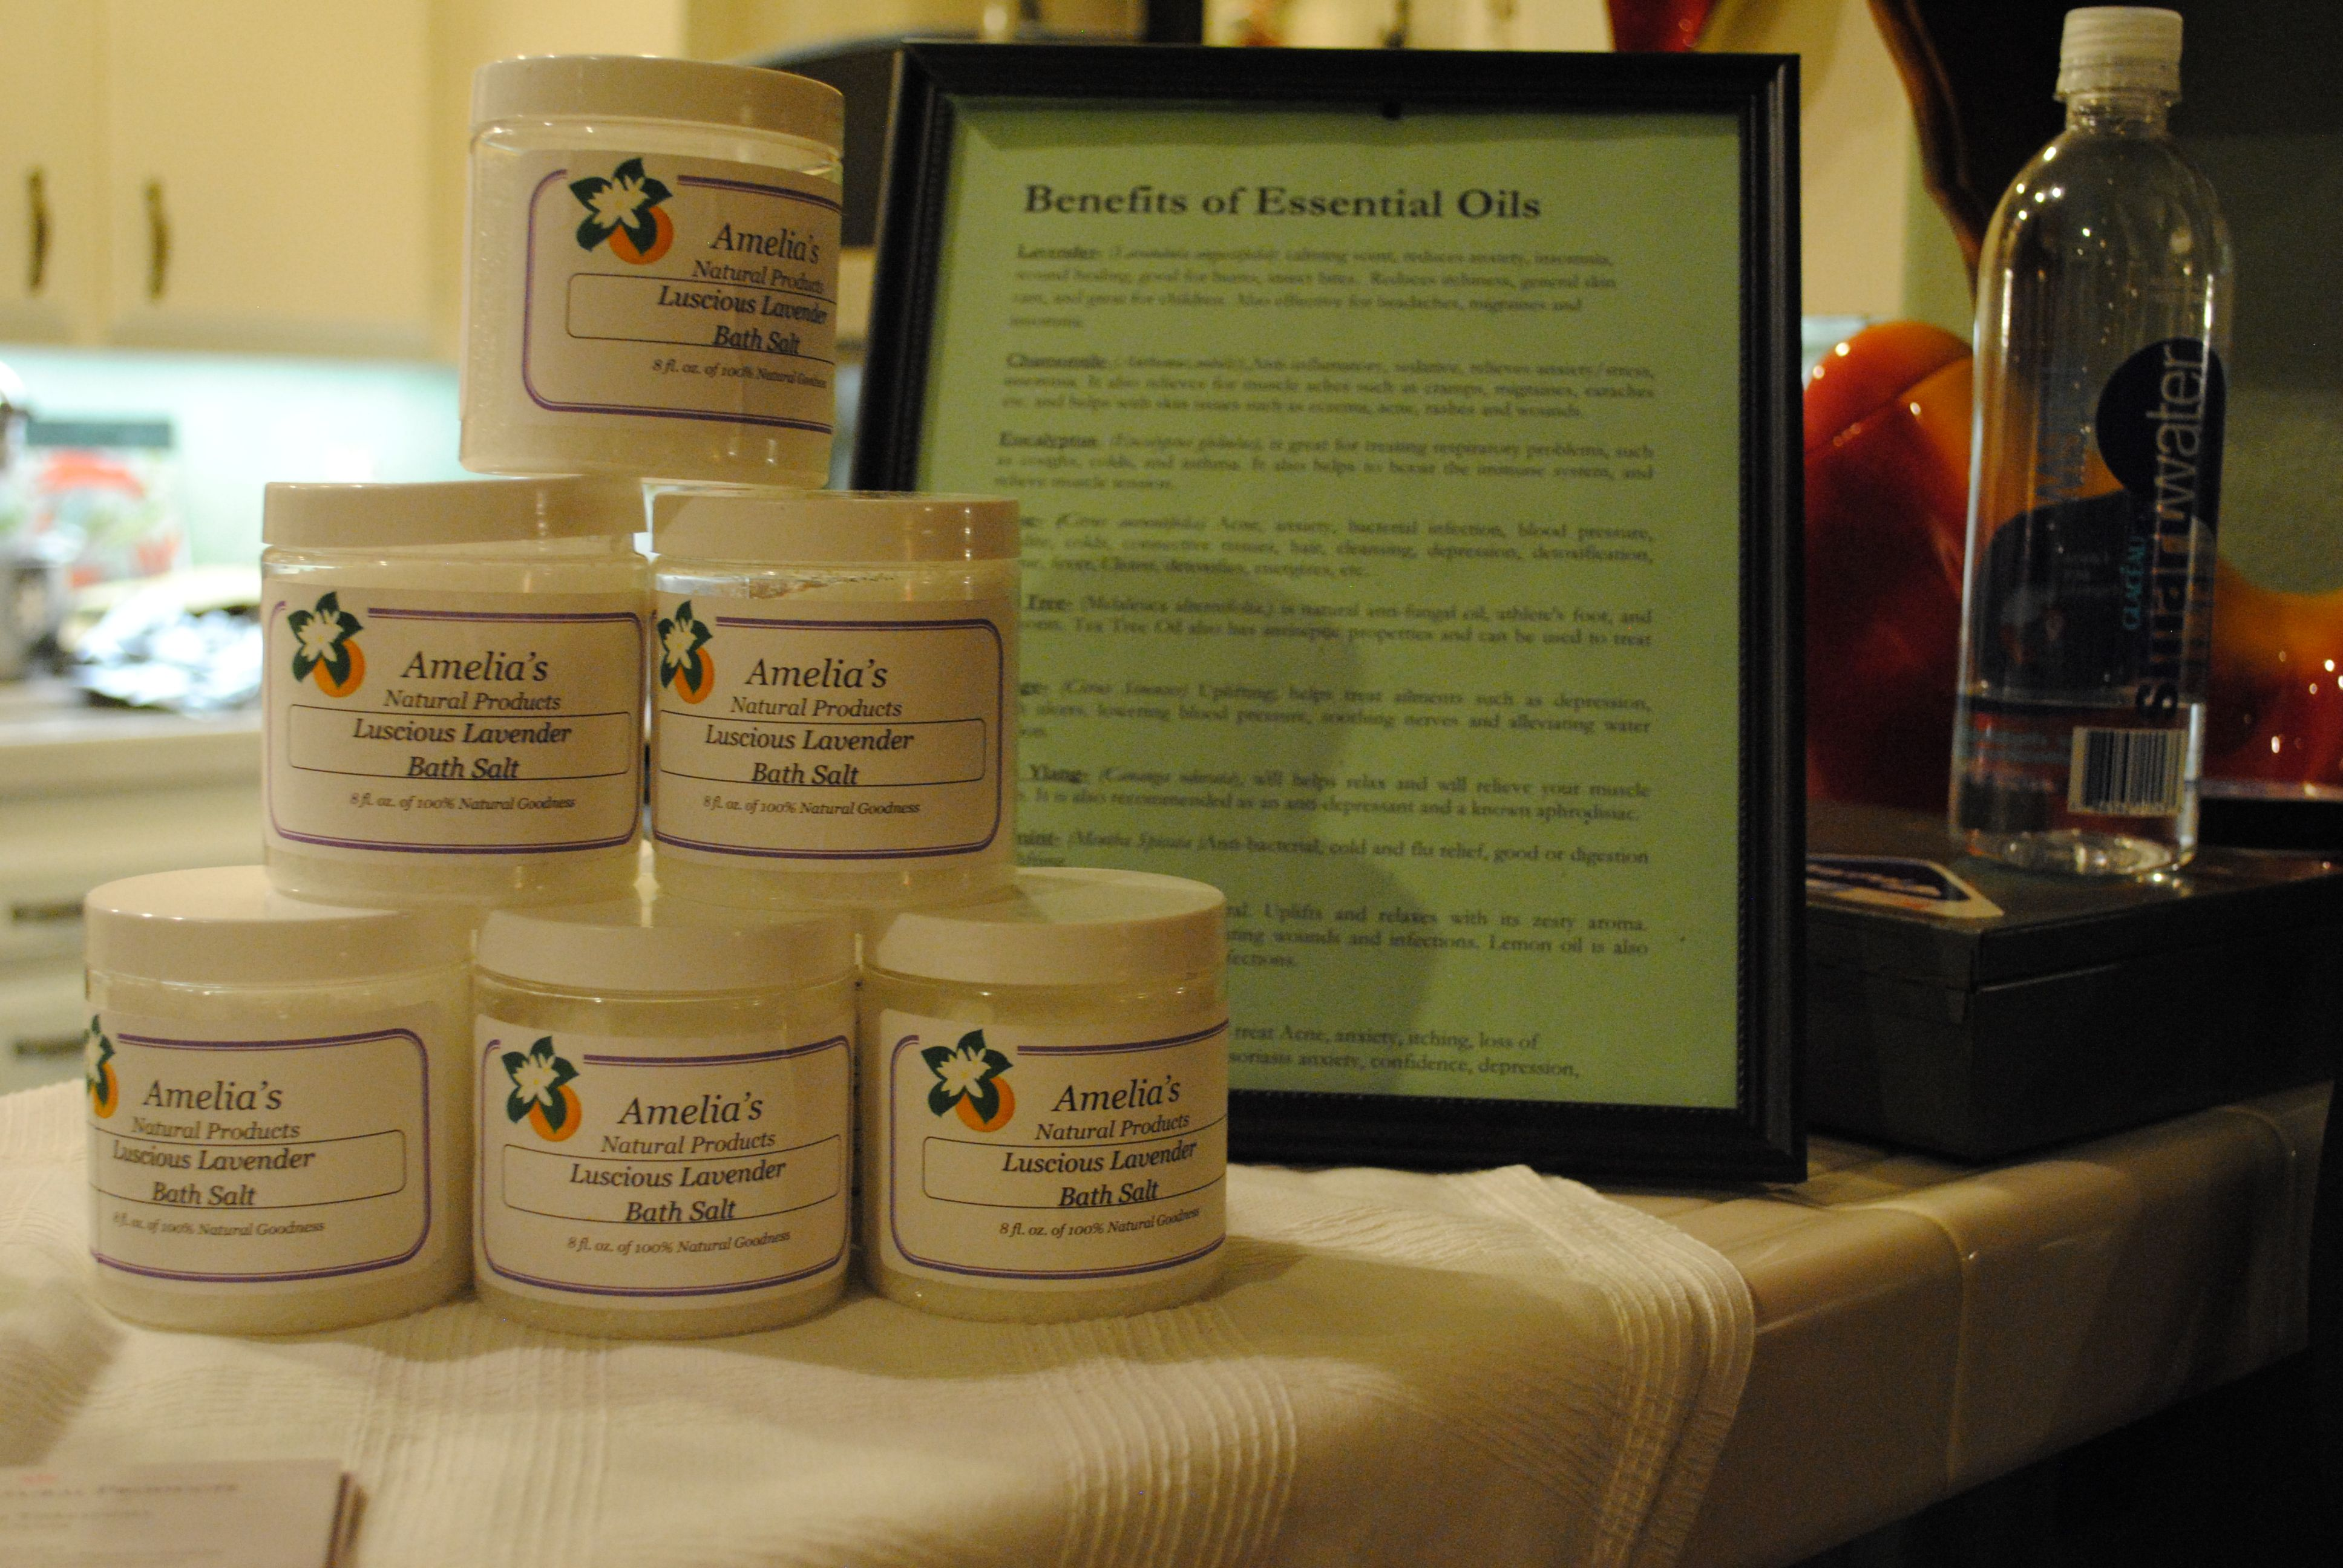 Amelia's Natural Products